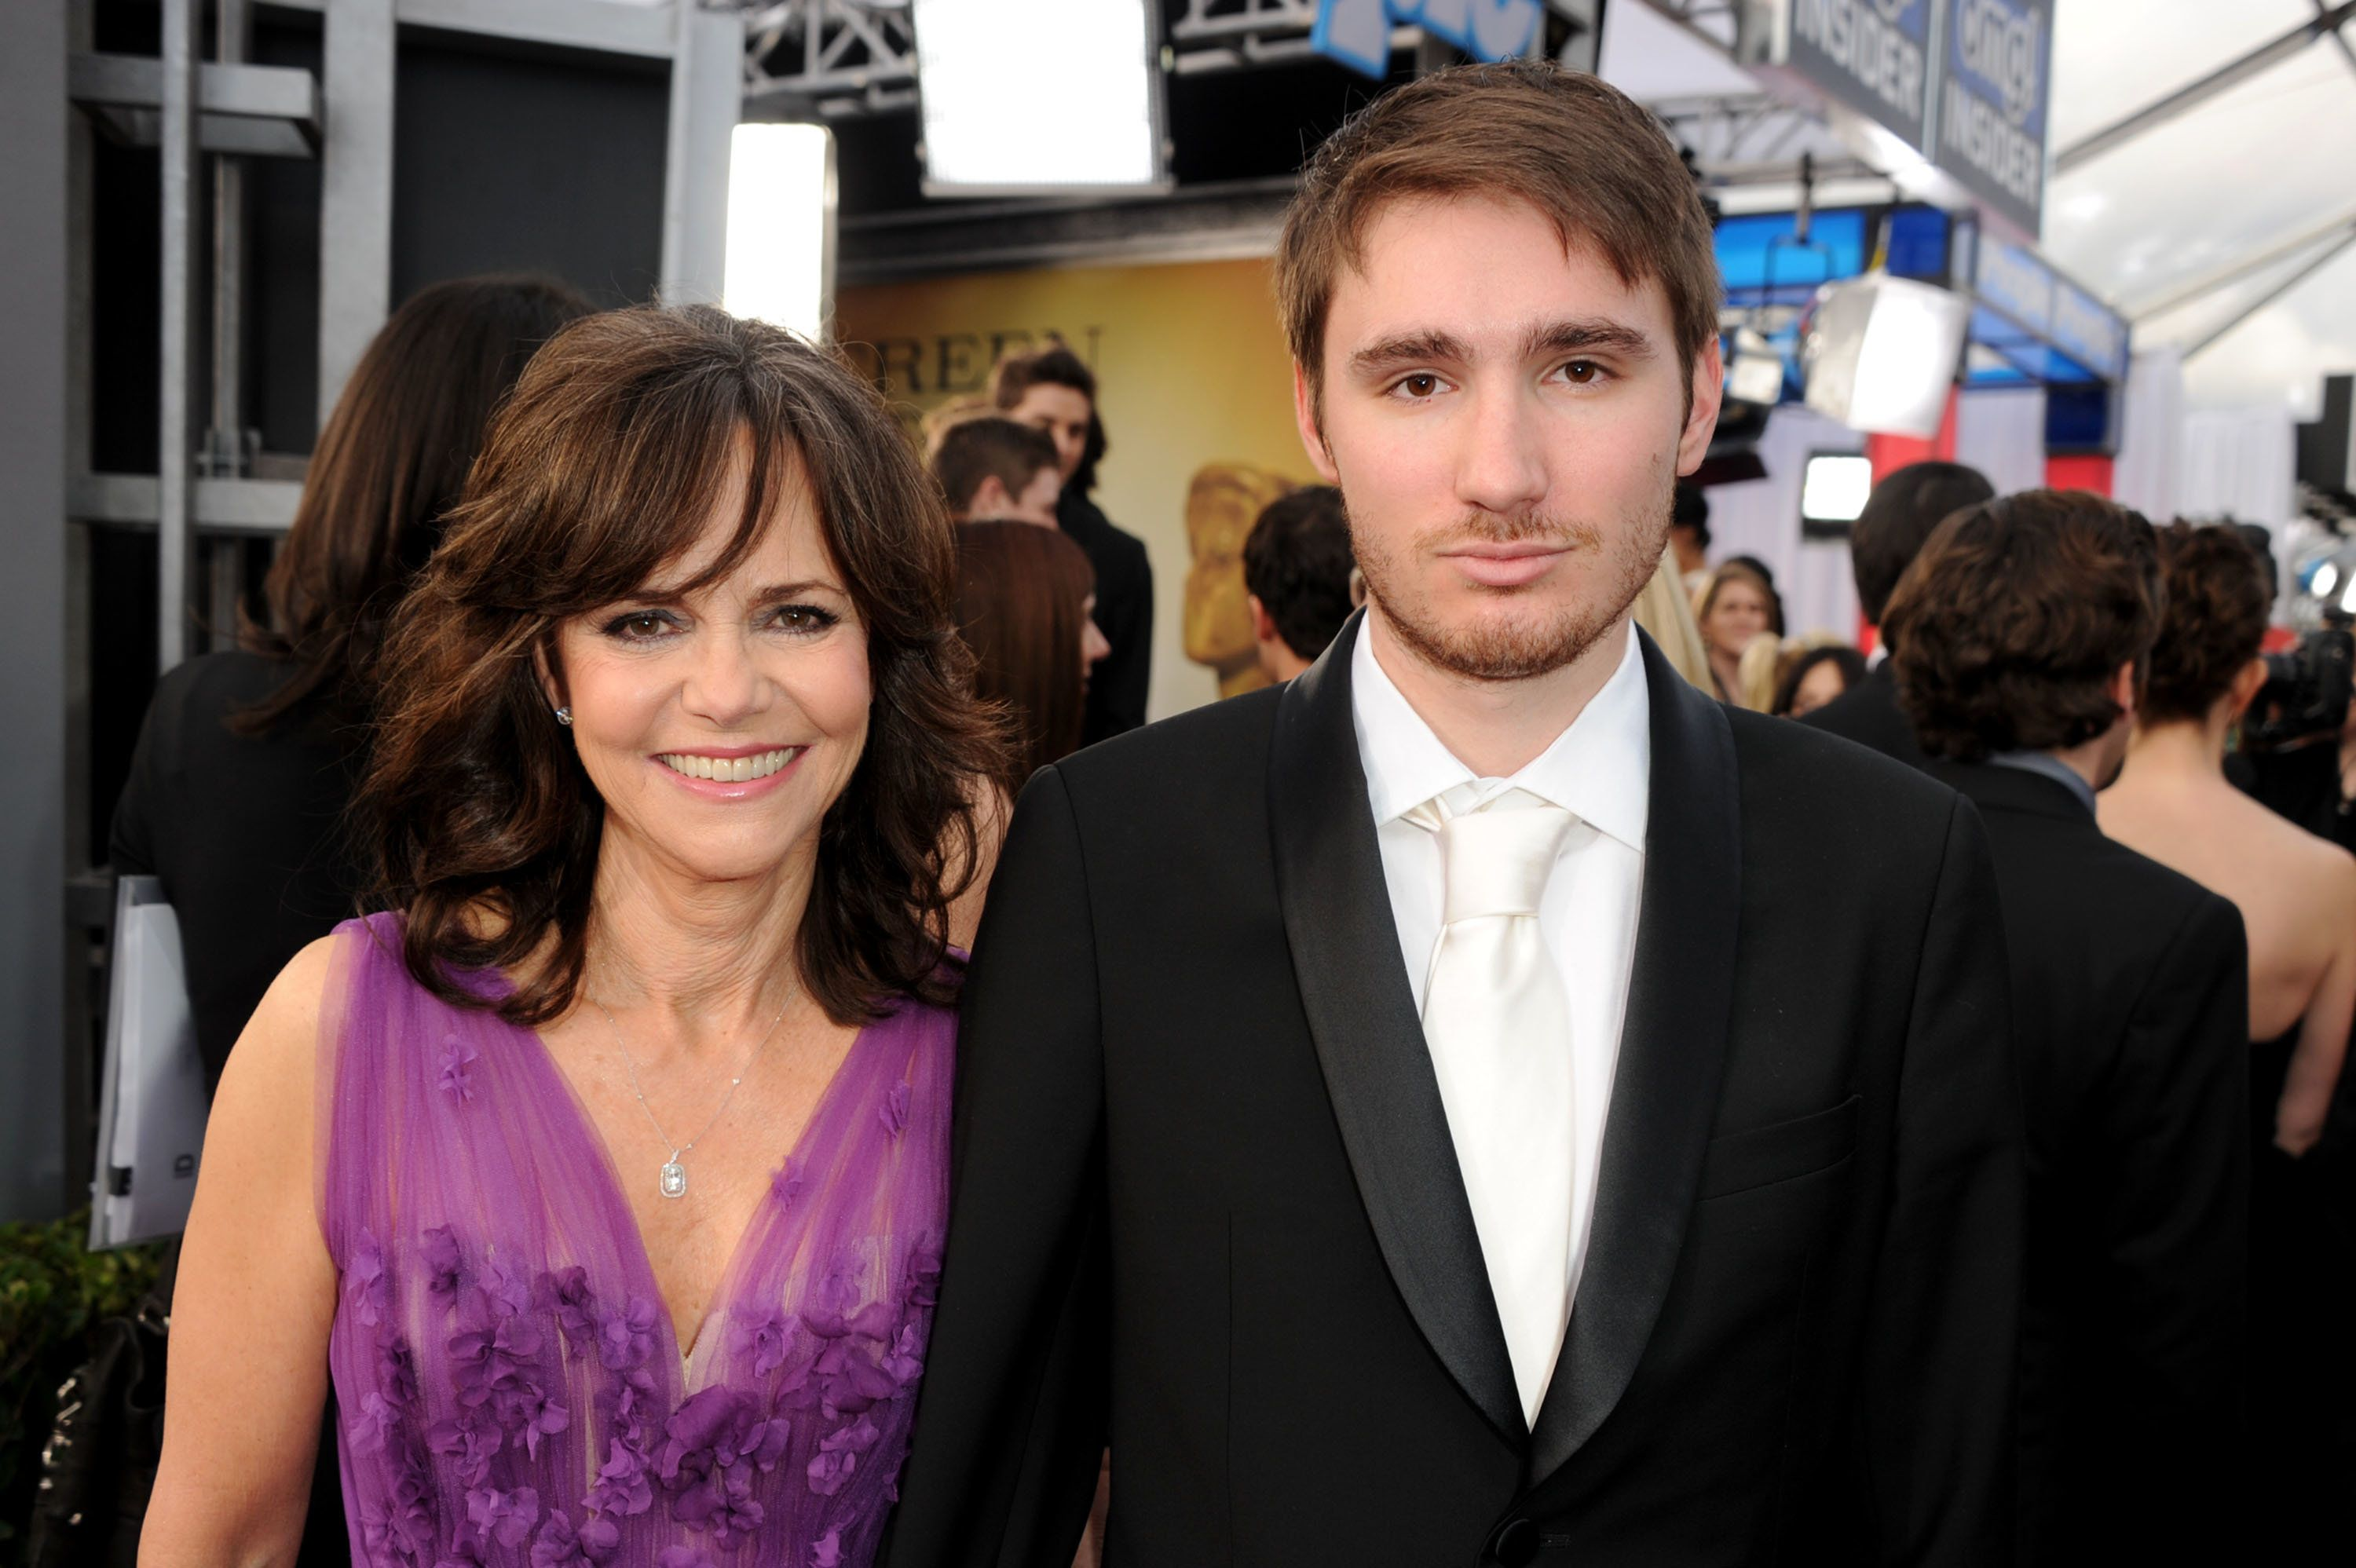 LOS ANGELES, CA - JANUARY 27:  Actress Sally Field and son, Sam Greisman attend the 19th Annual Screen Actors Guild Awards at The Shrine Auditorium on January 27, 2013 in Los Angeles, California. (Photo by Kevin Winter/WireImage) 23116_017_0658.JPG